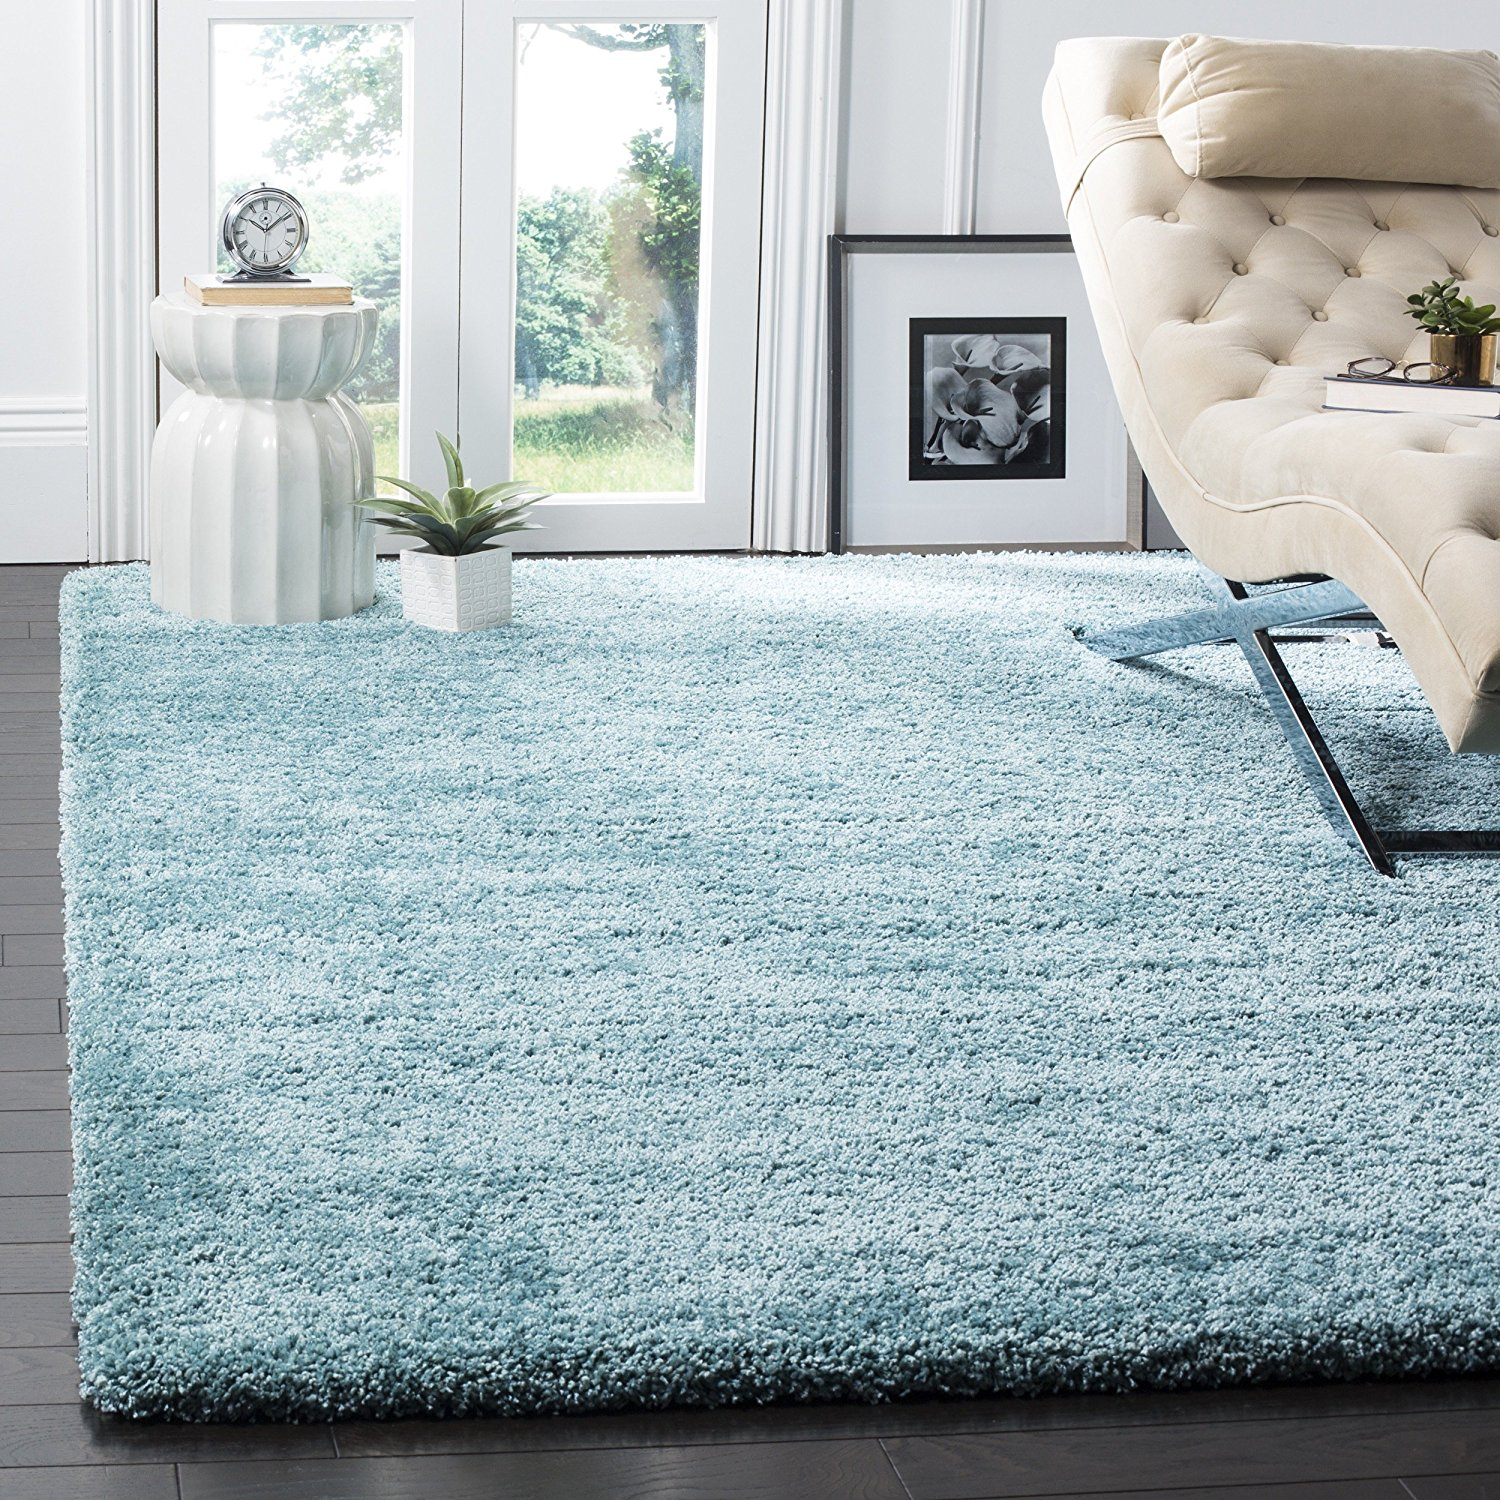 Safavieh Milan Shag Collection SG180-6060 Aqua Blue Area Rug (6' x 9')